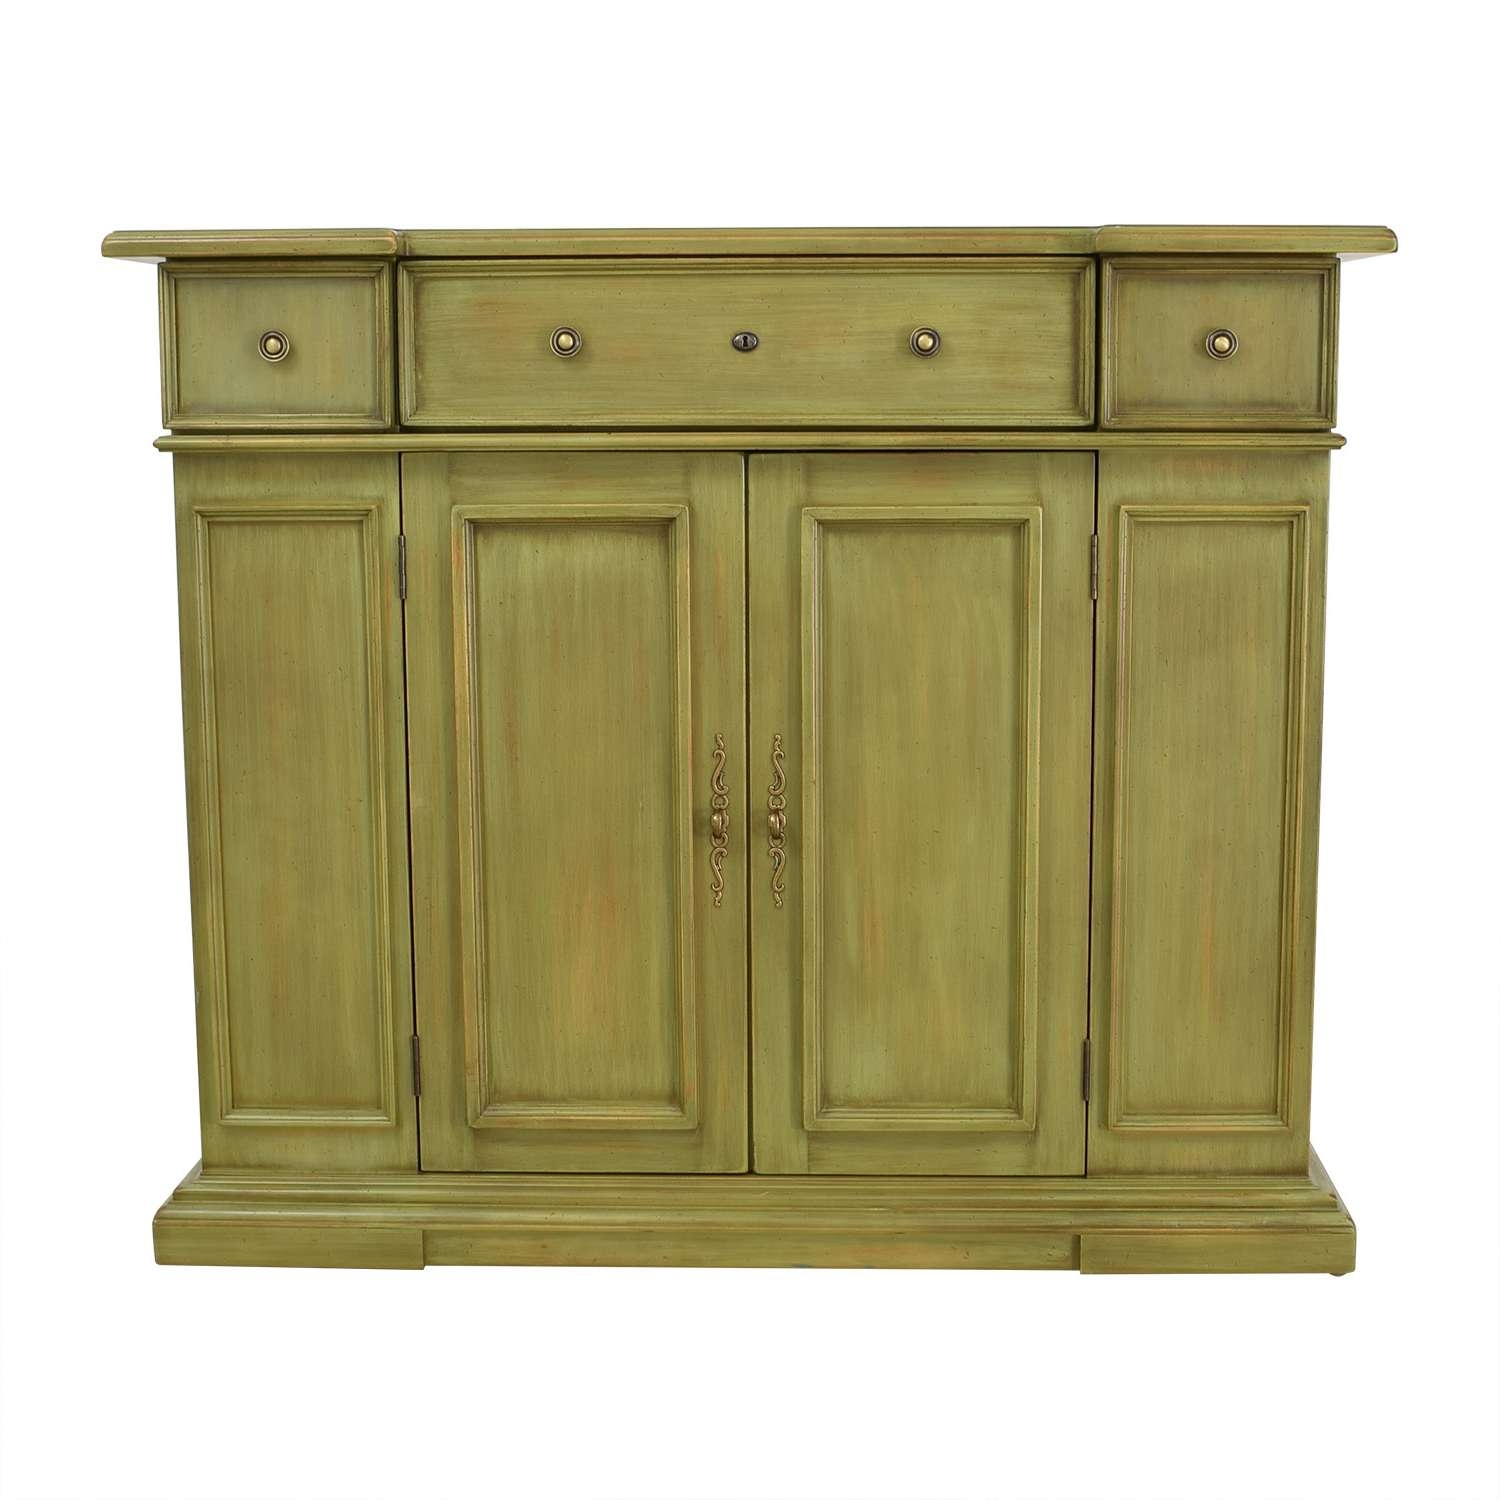 76% Off – Breakfront Breakfront Lime Green Cabinet With Storage Intended For Green Sideboards (View 8 of 20)